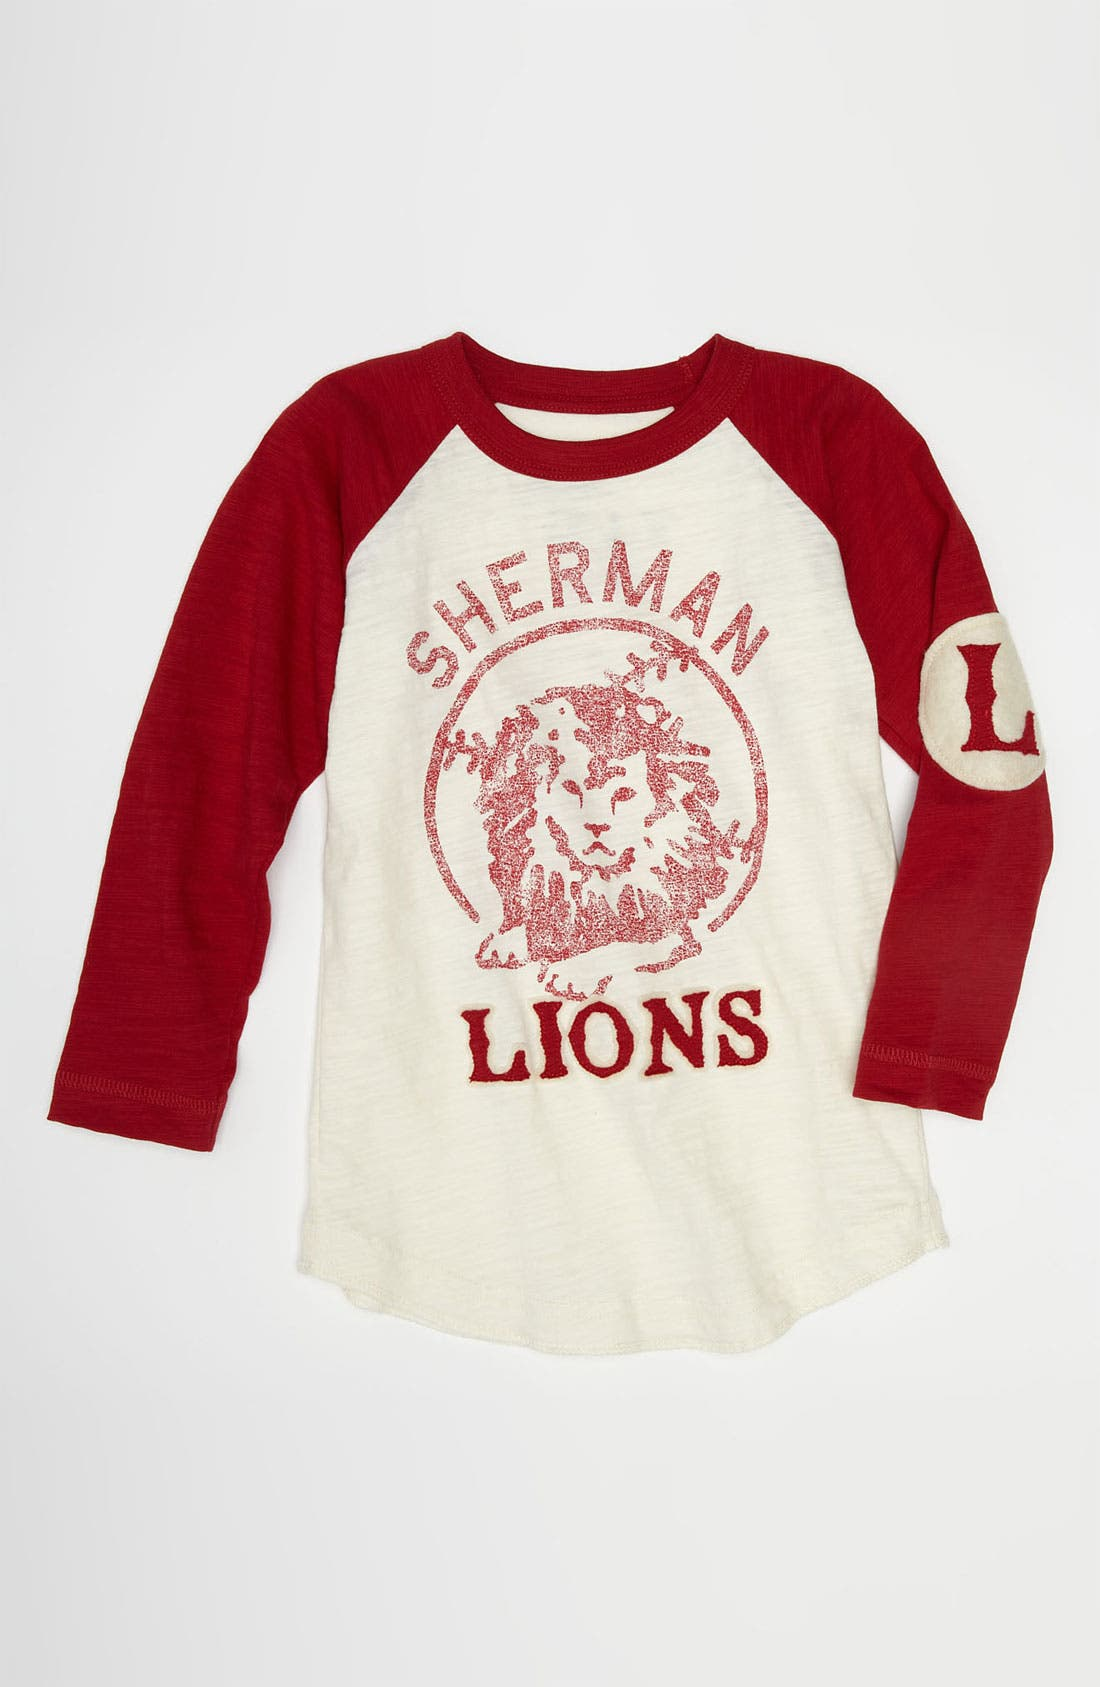 Main Image - Peek 'Sherman Lions' T-Shirt (Toddler, Little Boys & Big Boys)